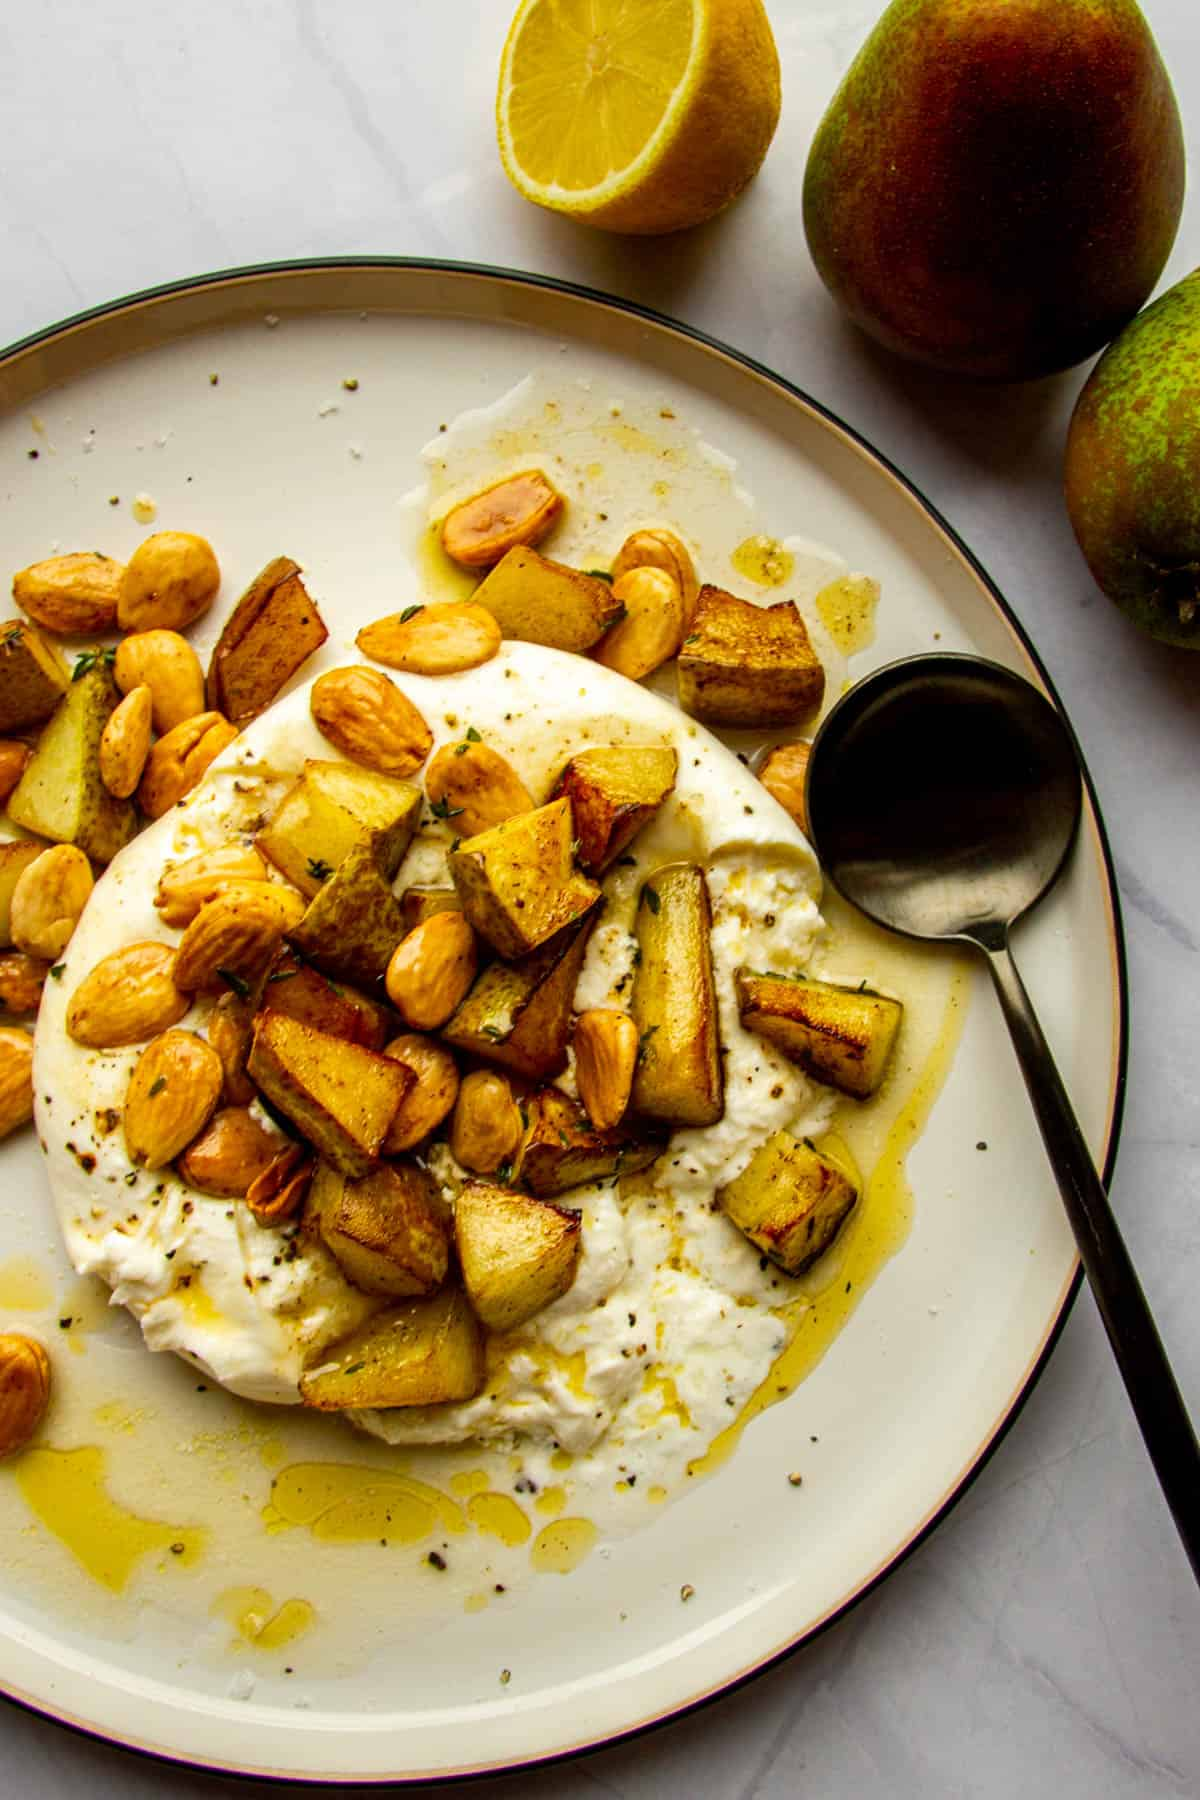 Whole burrata on a plate with roasted pears, thyme, marcona almonds and brown butter